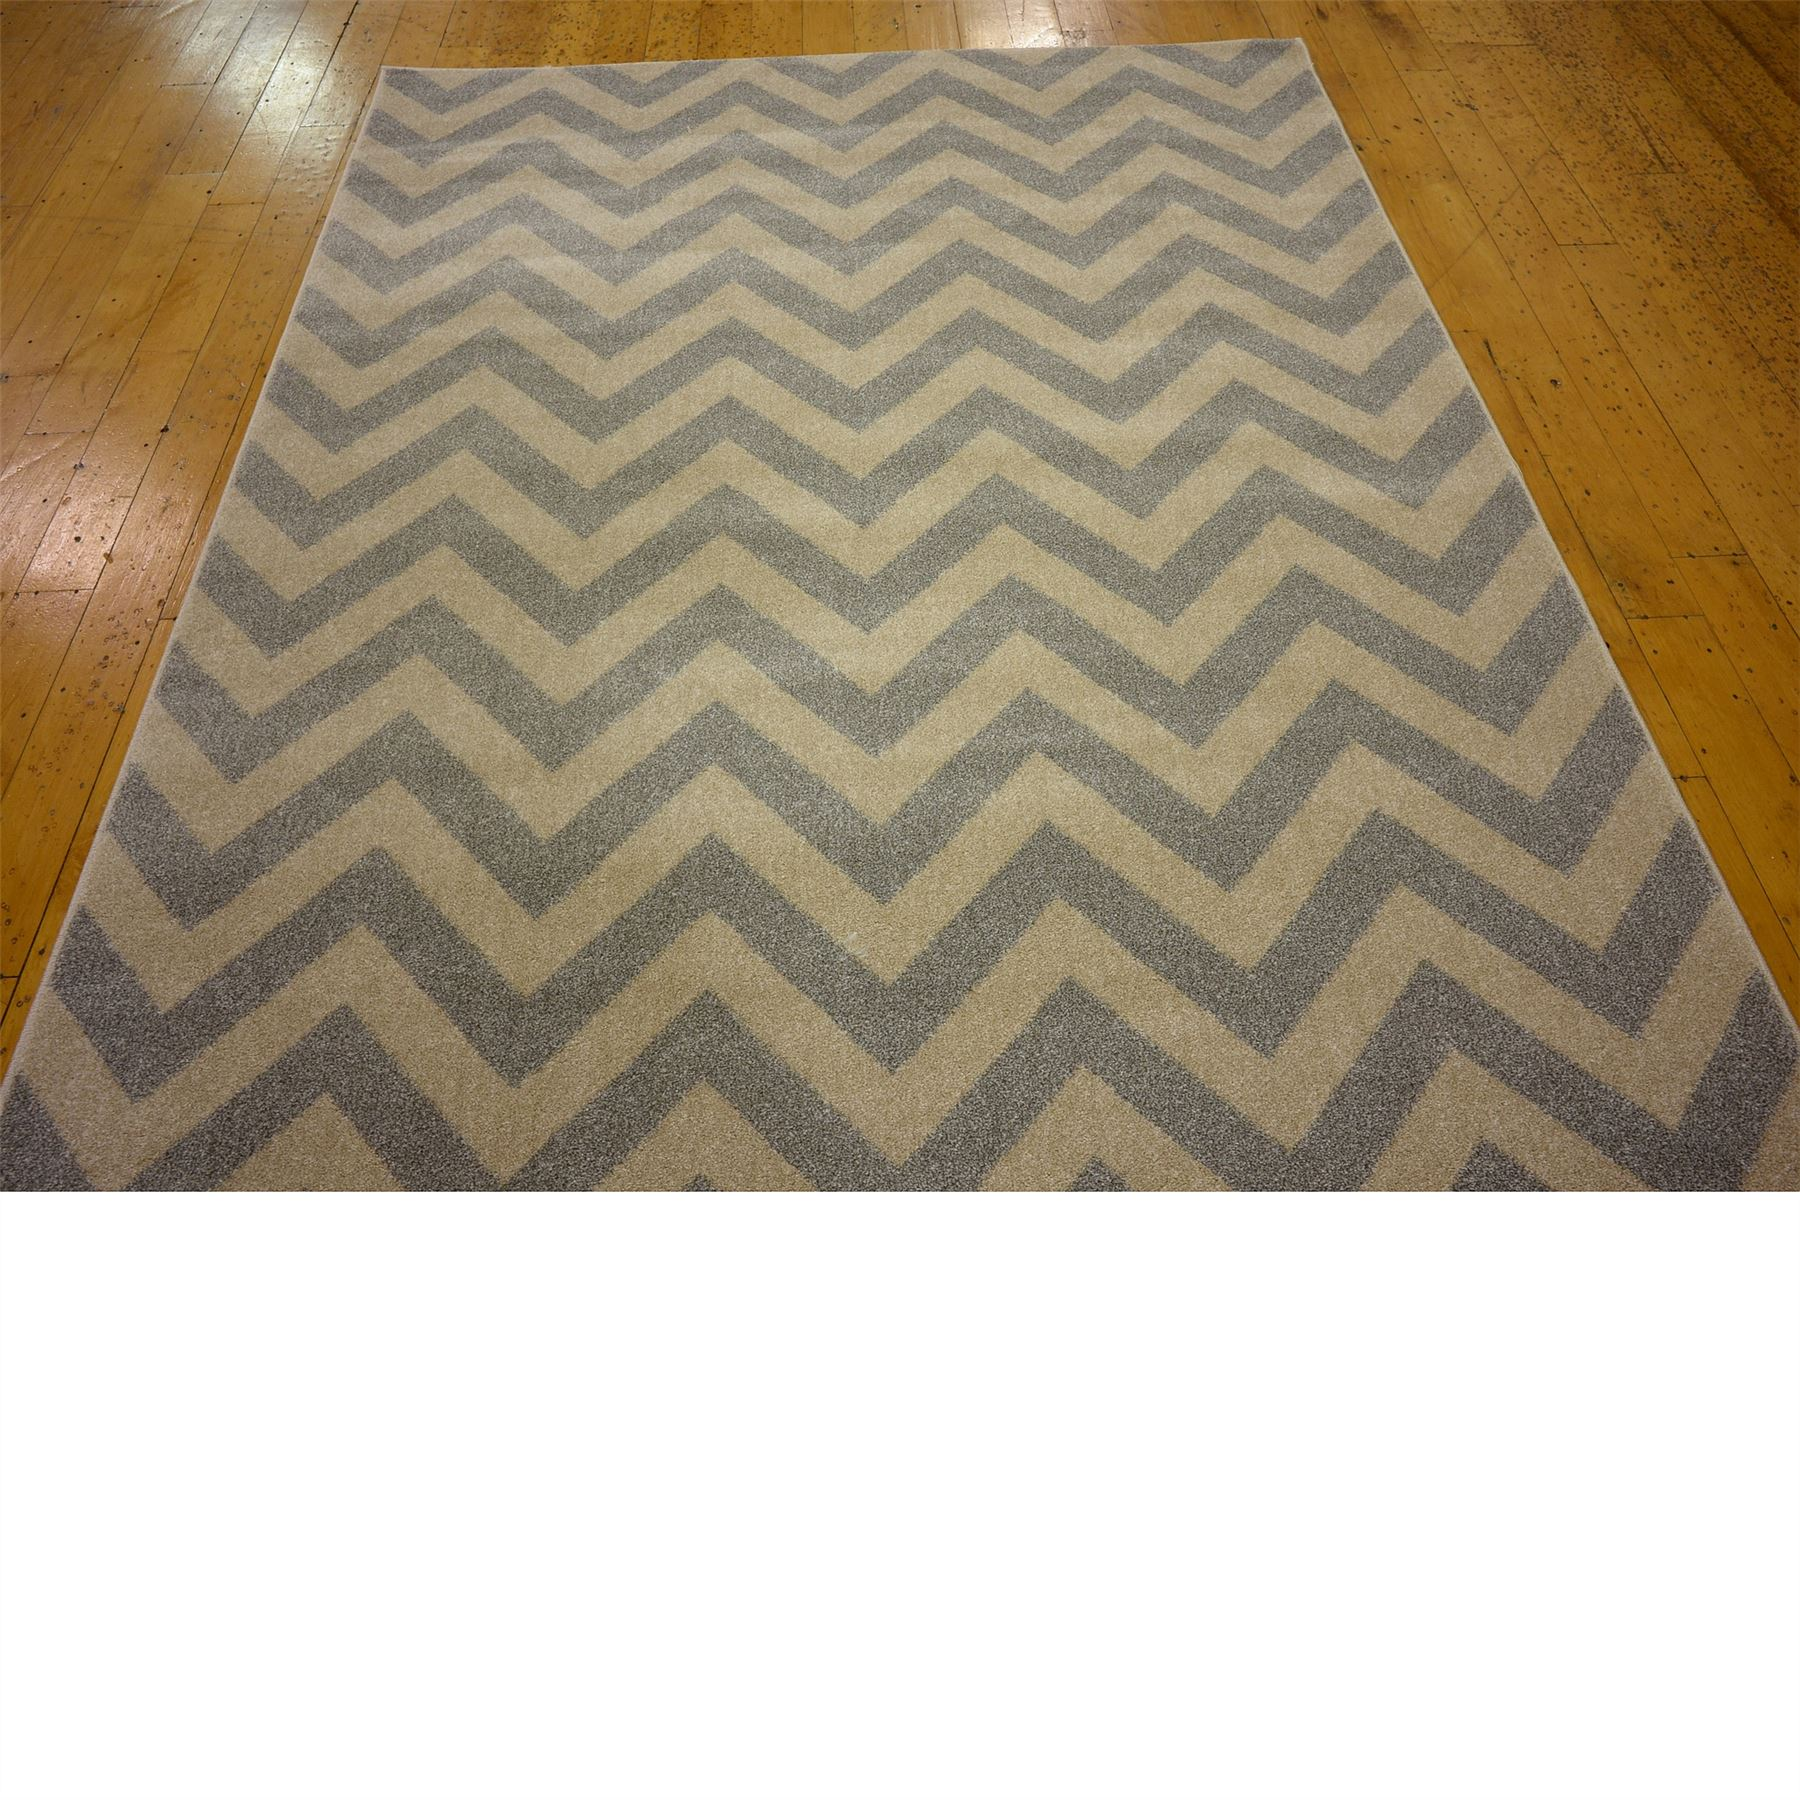 Modern Rug Soft: Modern Area Rugs Brand New Rugs Contemporary Carpet Soft